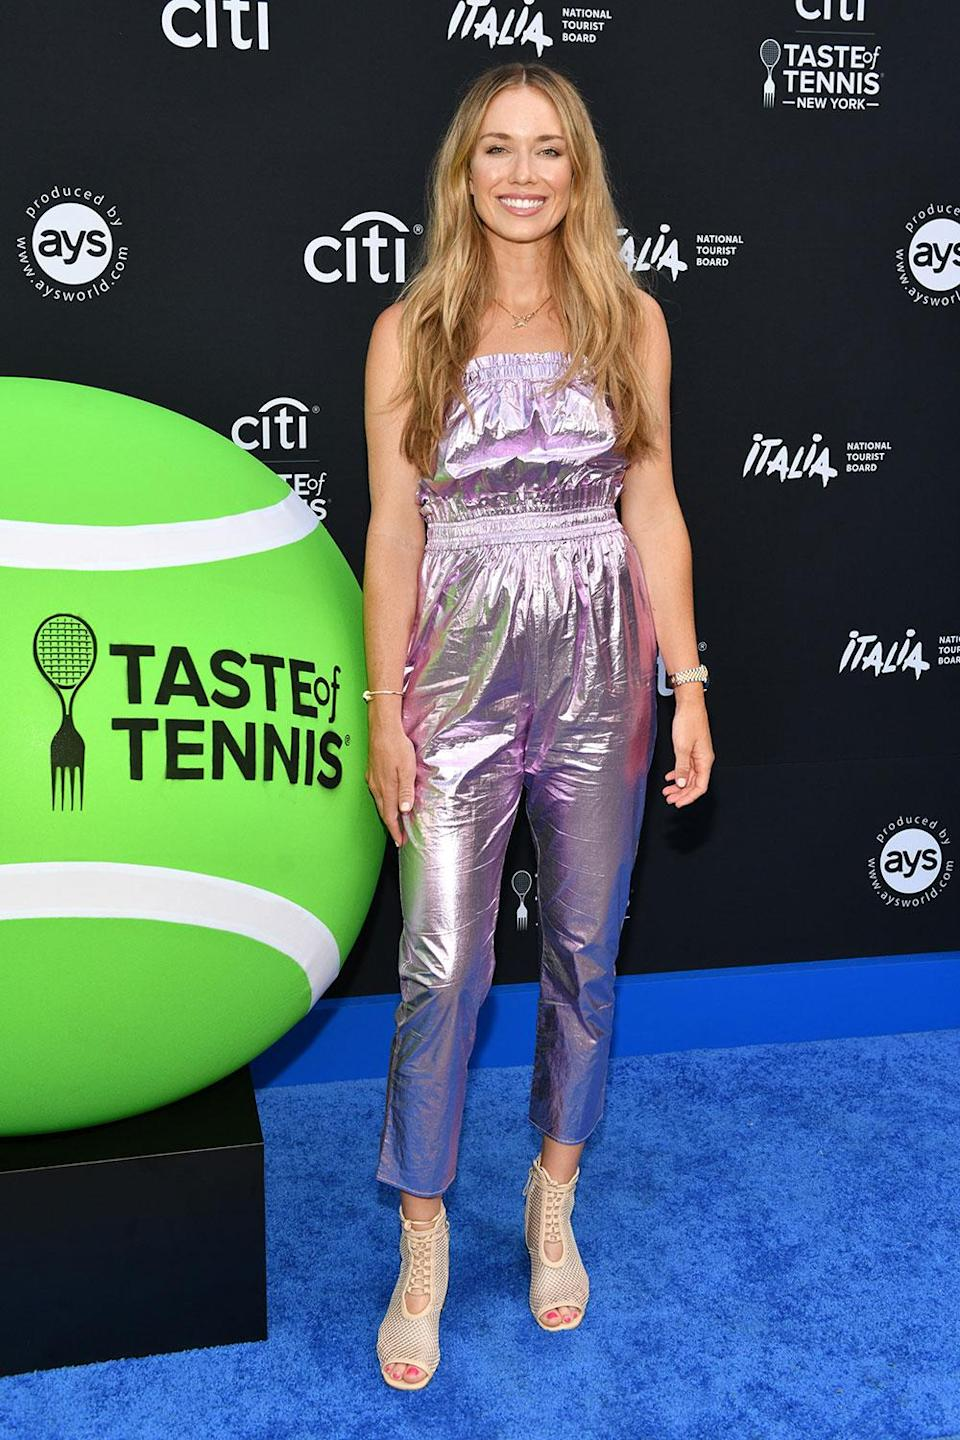 <p>at Citi's Taste of Tennis celebration at Tavern On the Green on Aug. 26. </p>